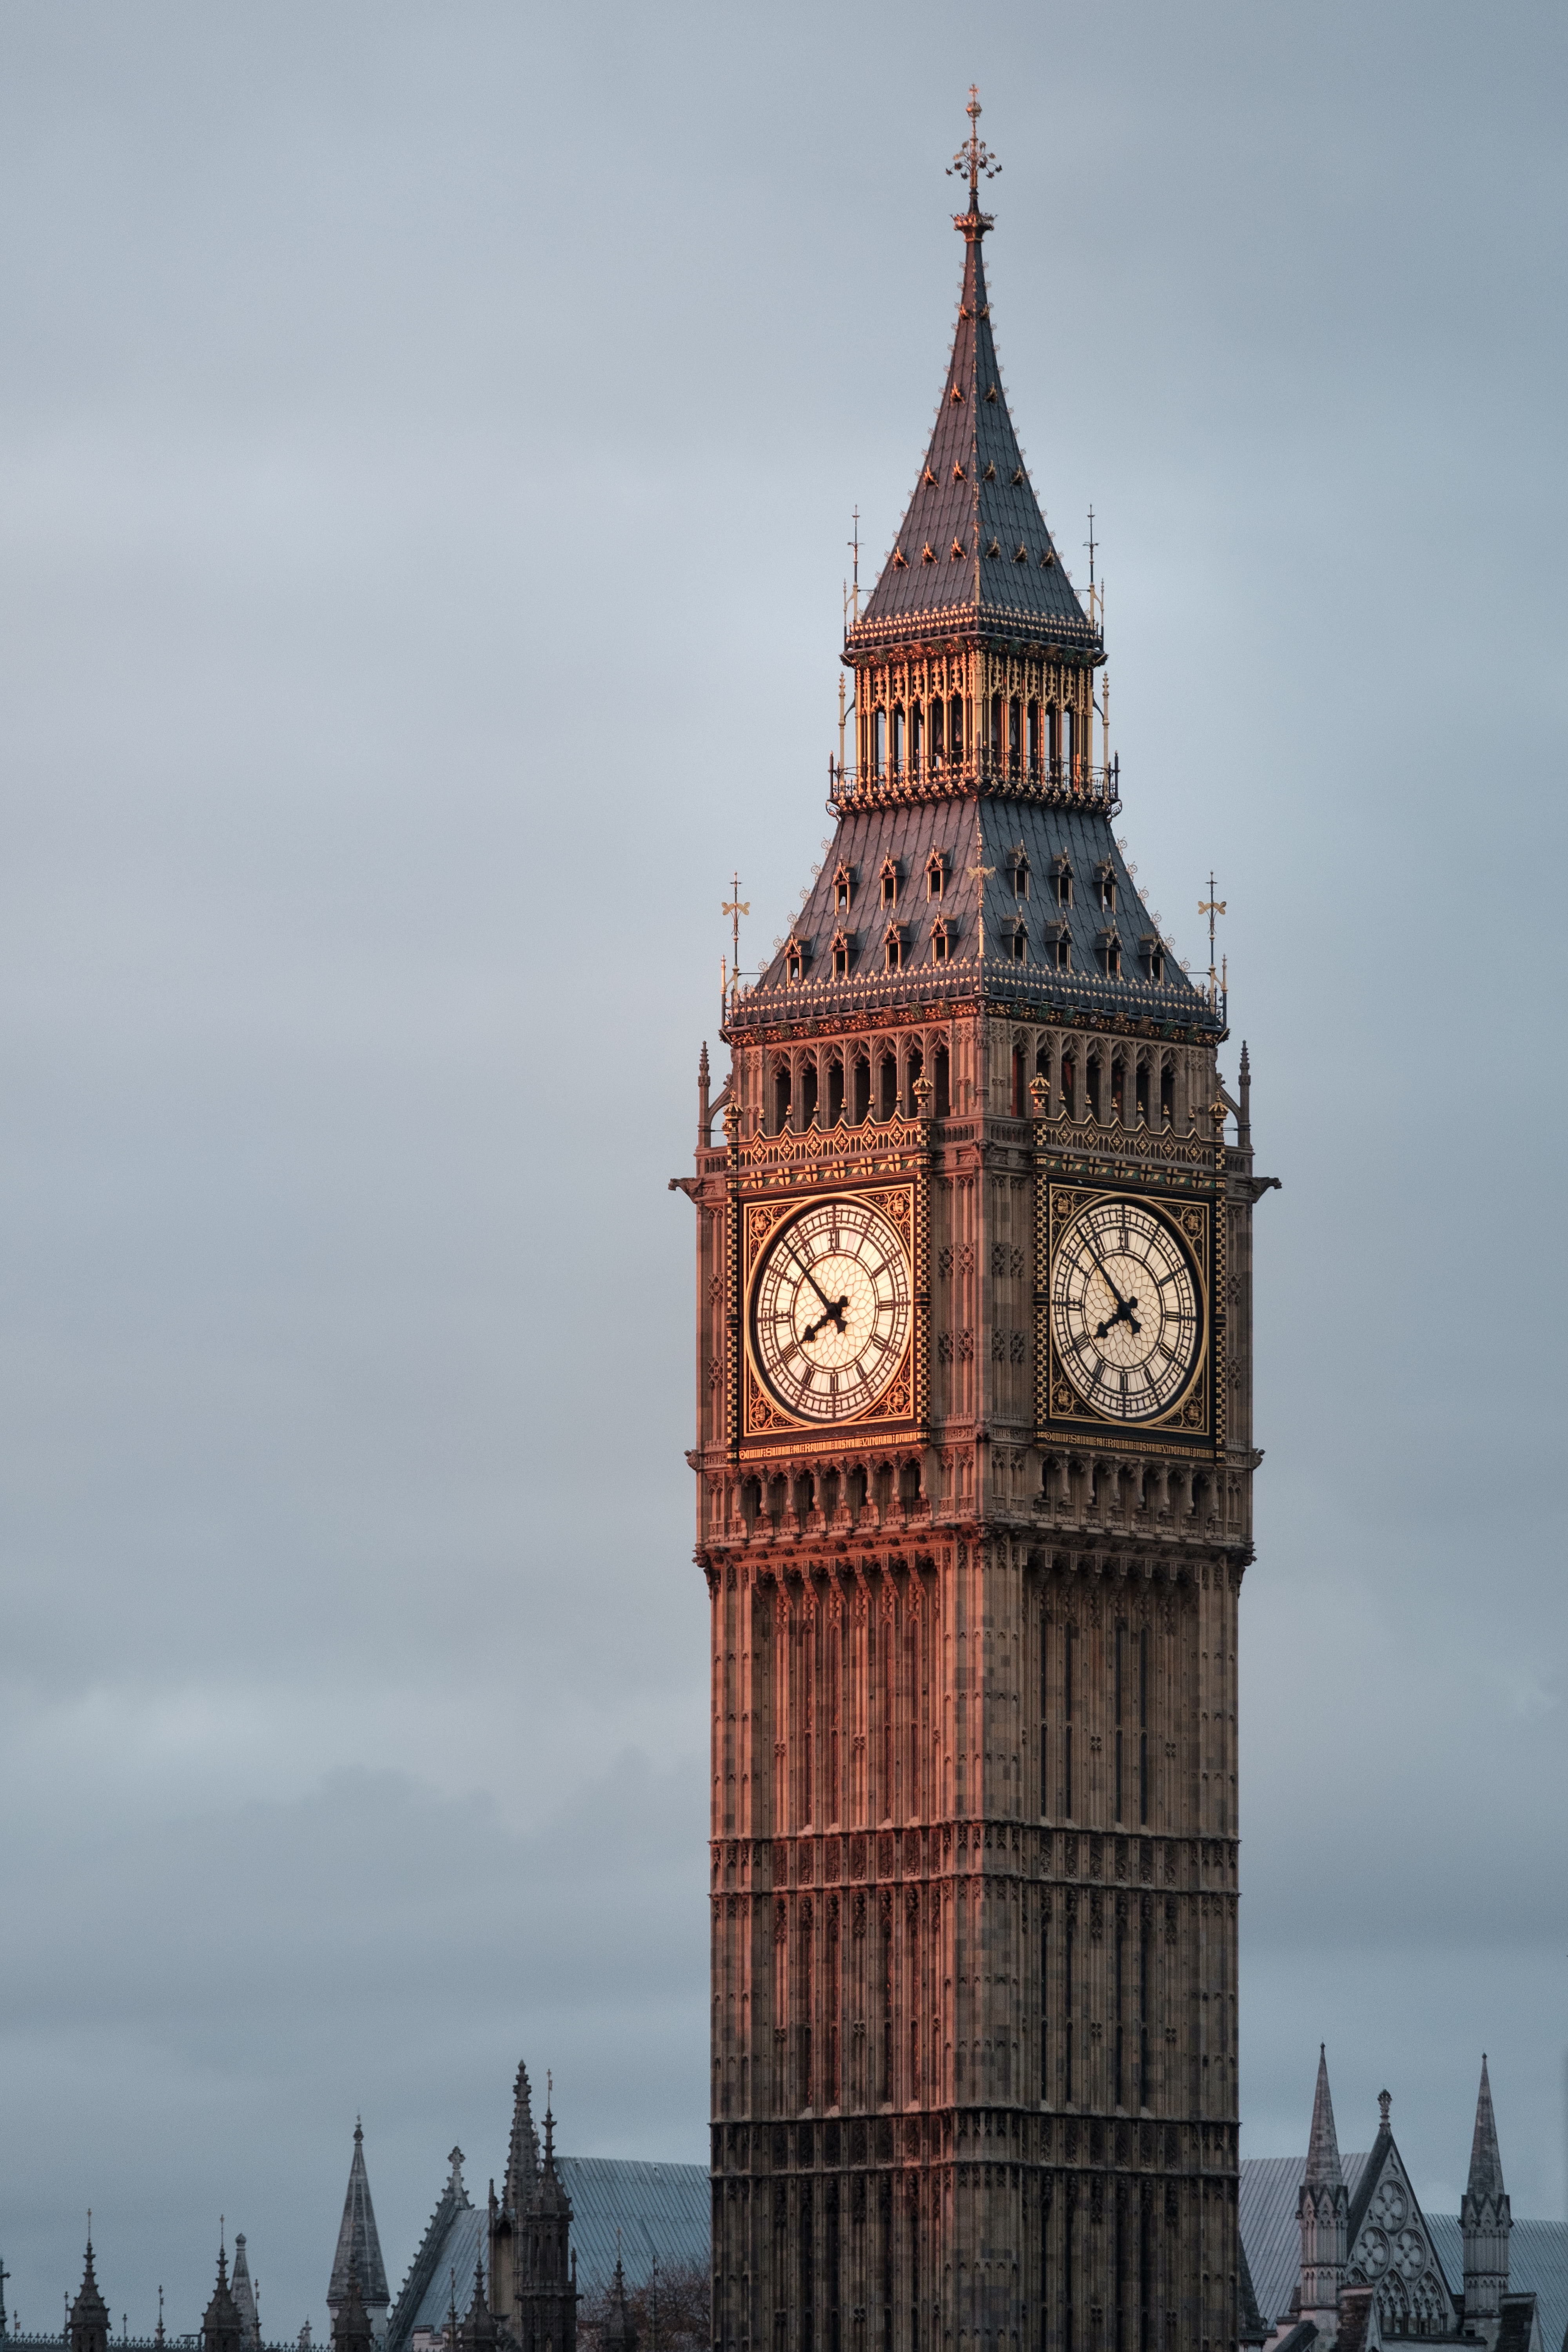 Big Ben clock tower in the early light of morning with  the sun shining on the clock face